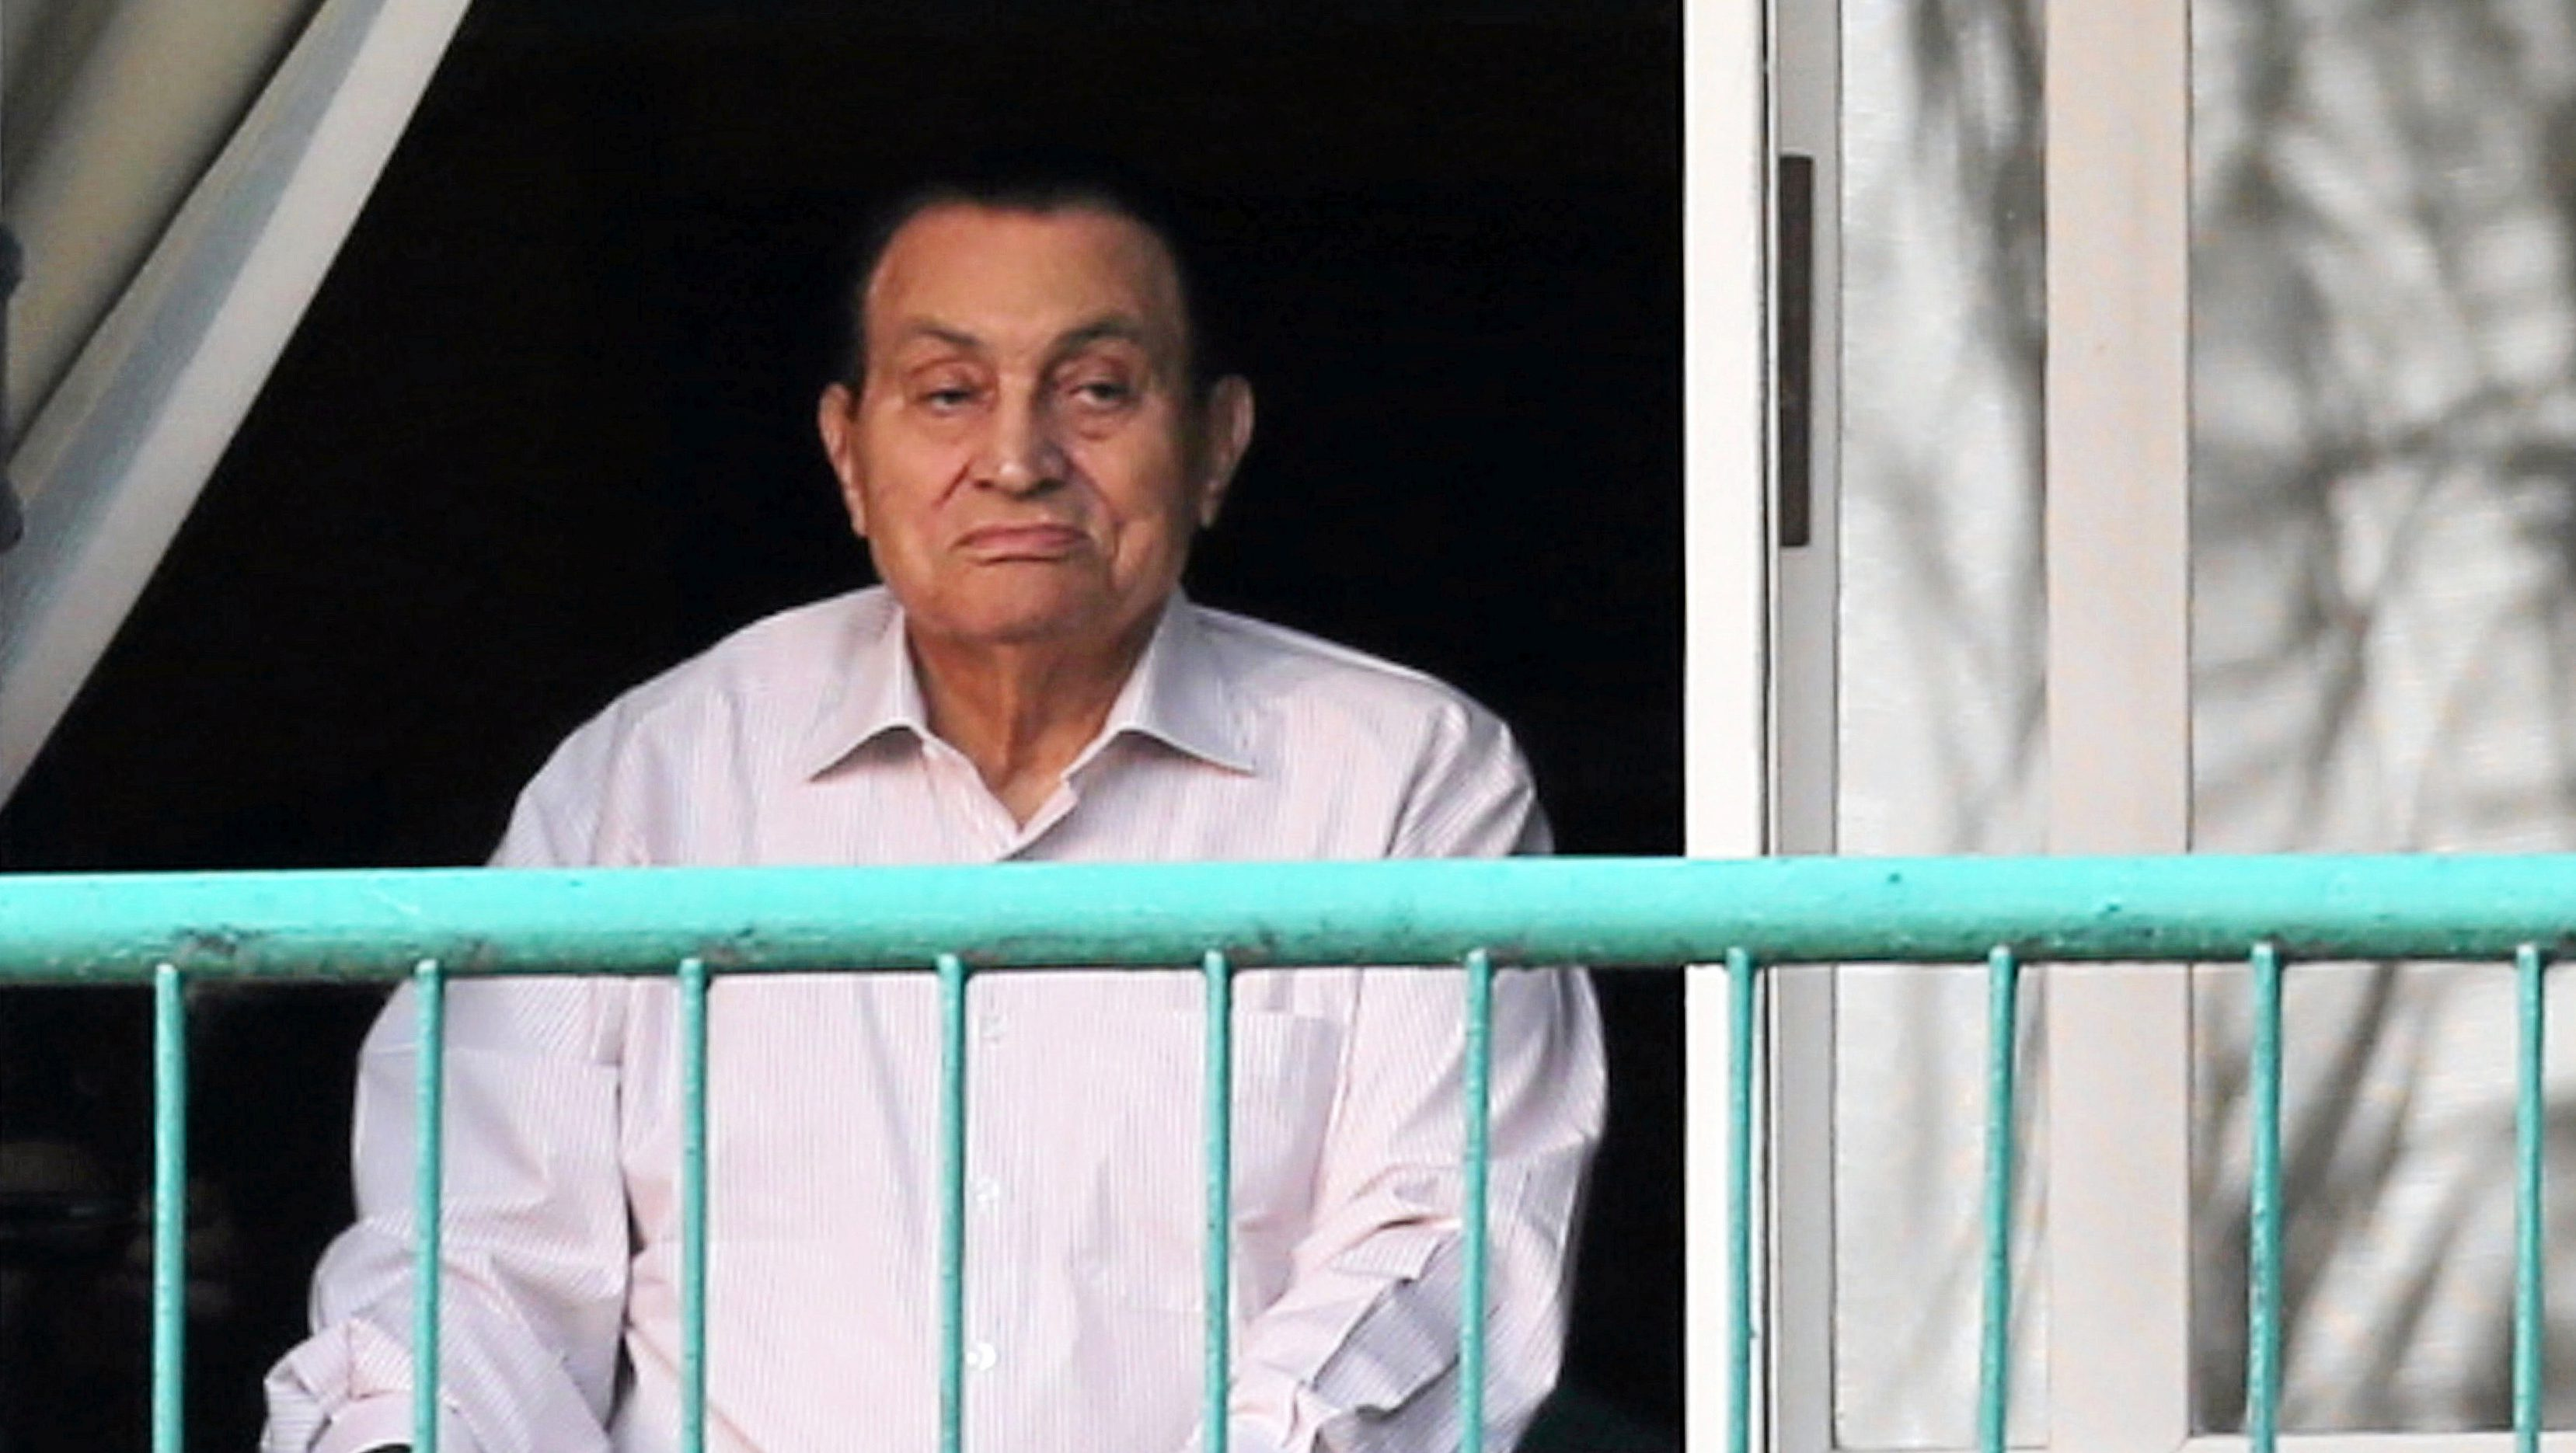 Ousted Egyptian president Hosni Mubarak looks towards his supporters outside the area where he is hospitalized during the celebrations of the 43rd anniversary of the 1973 Arab-Israeli war, at Maadi military hospital on the outskirts of Cairo, Egypt October 6, 2016.